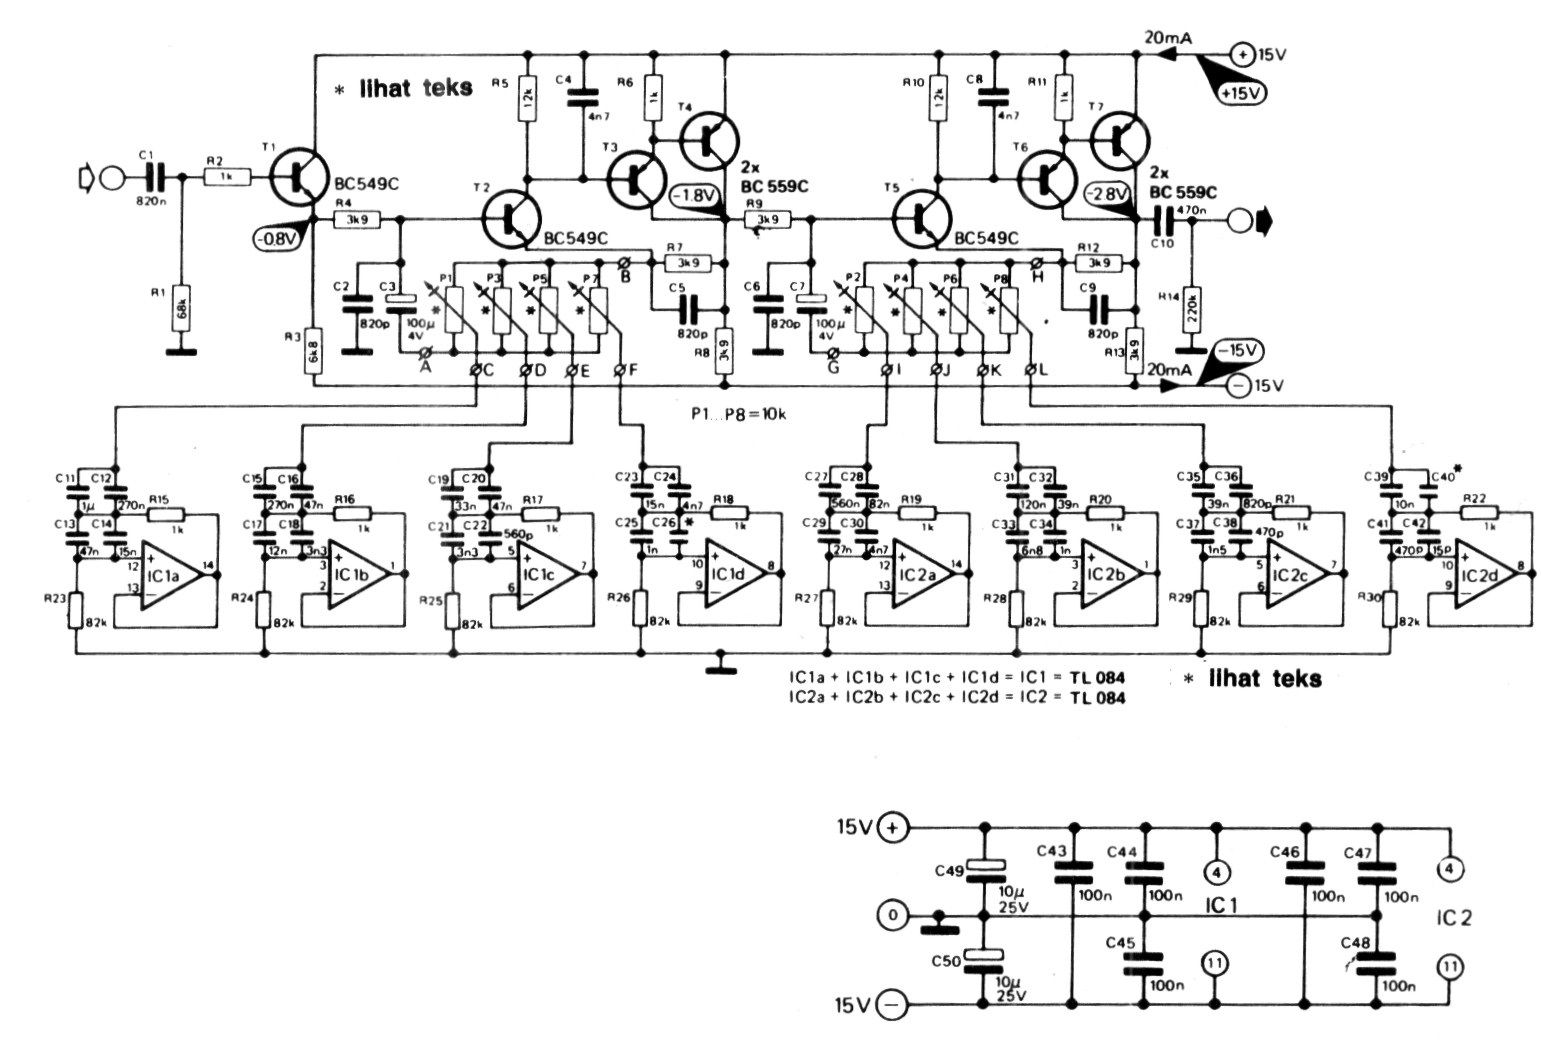 Schematic Of Octave Equalizer